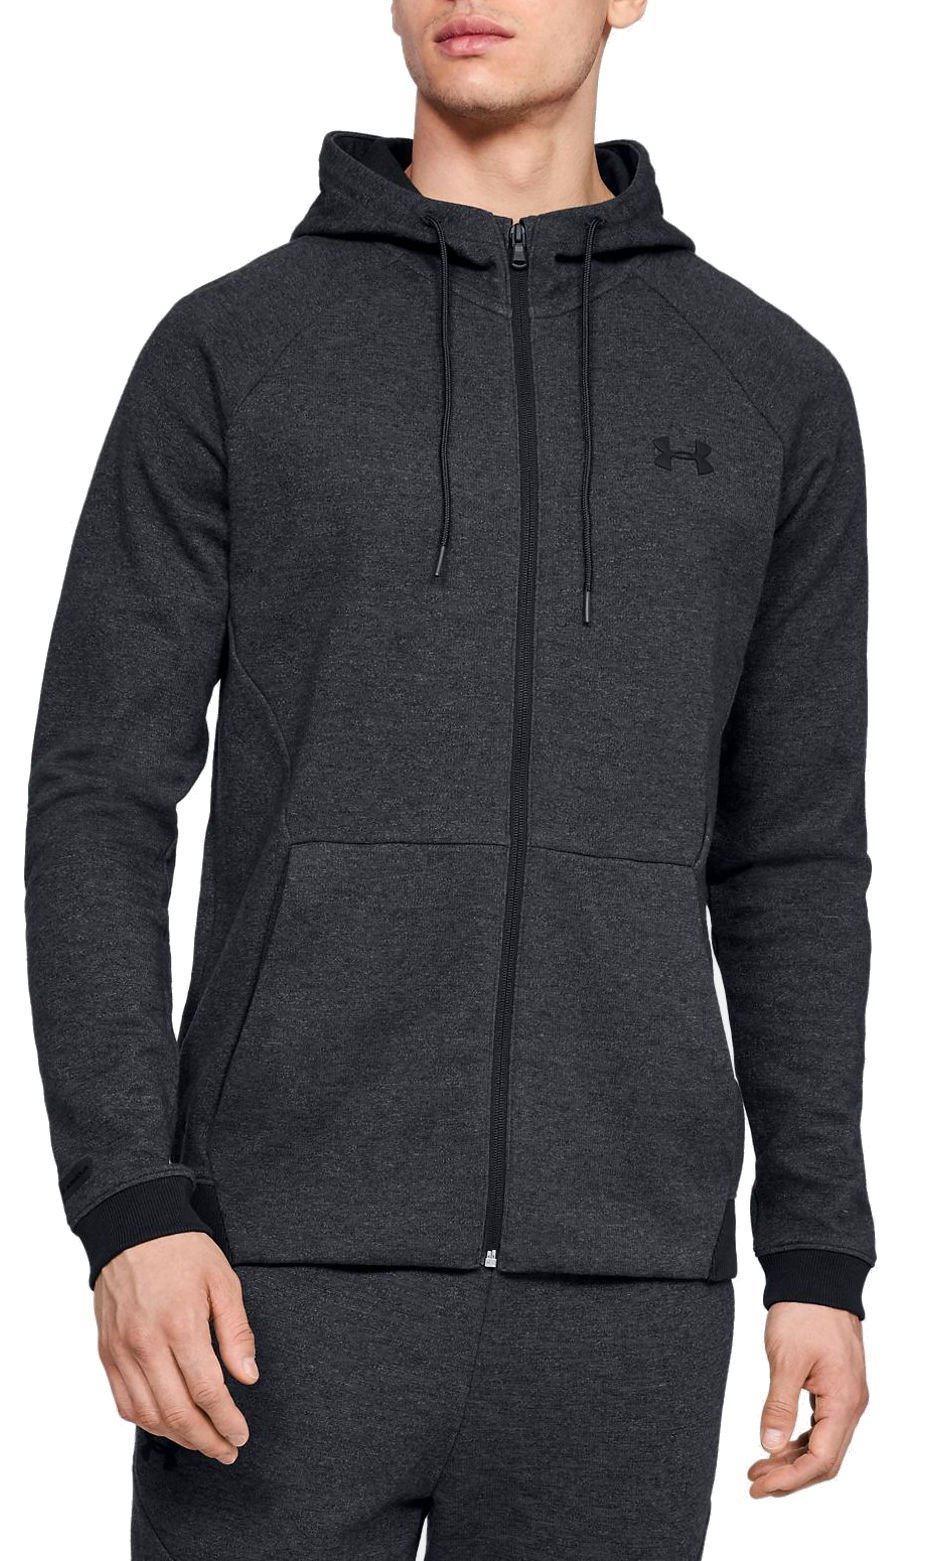 Hooded sweatshirt Under Armour UA Unstoppable 2X Knit